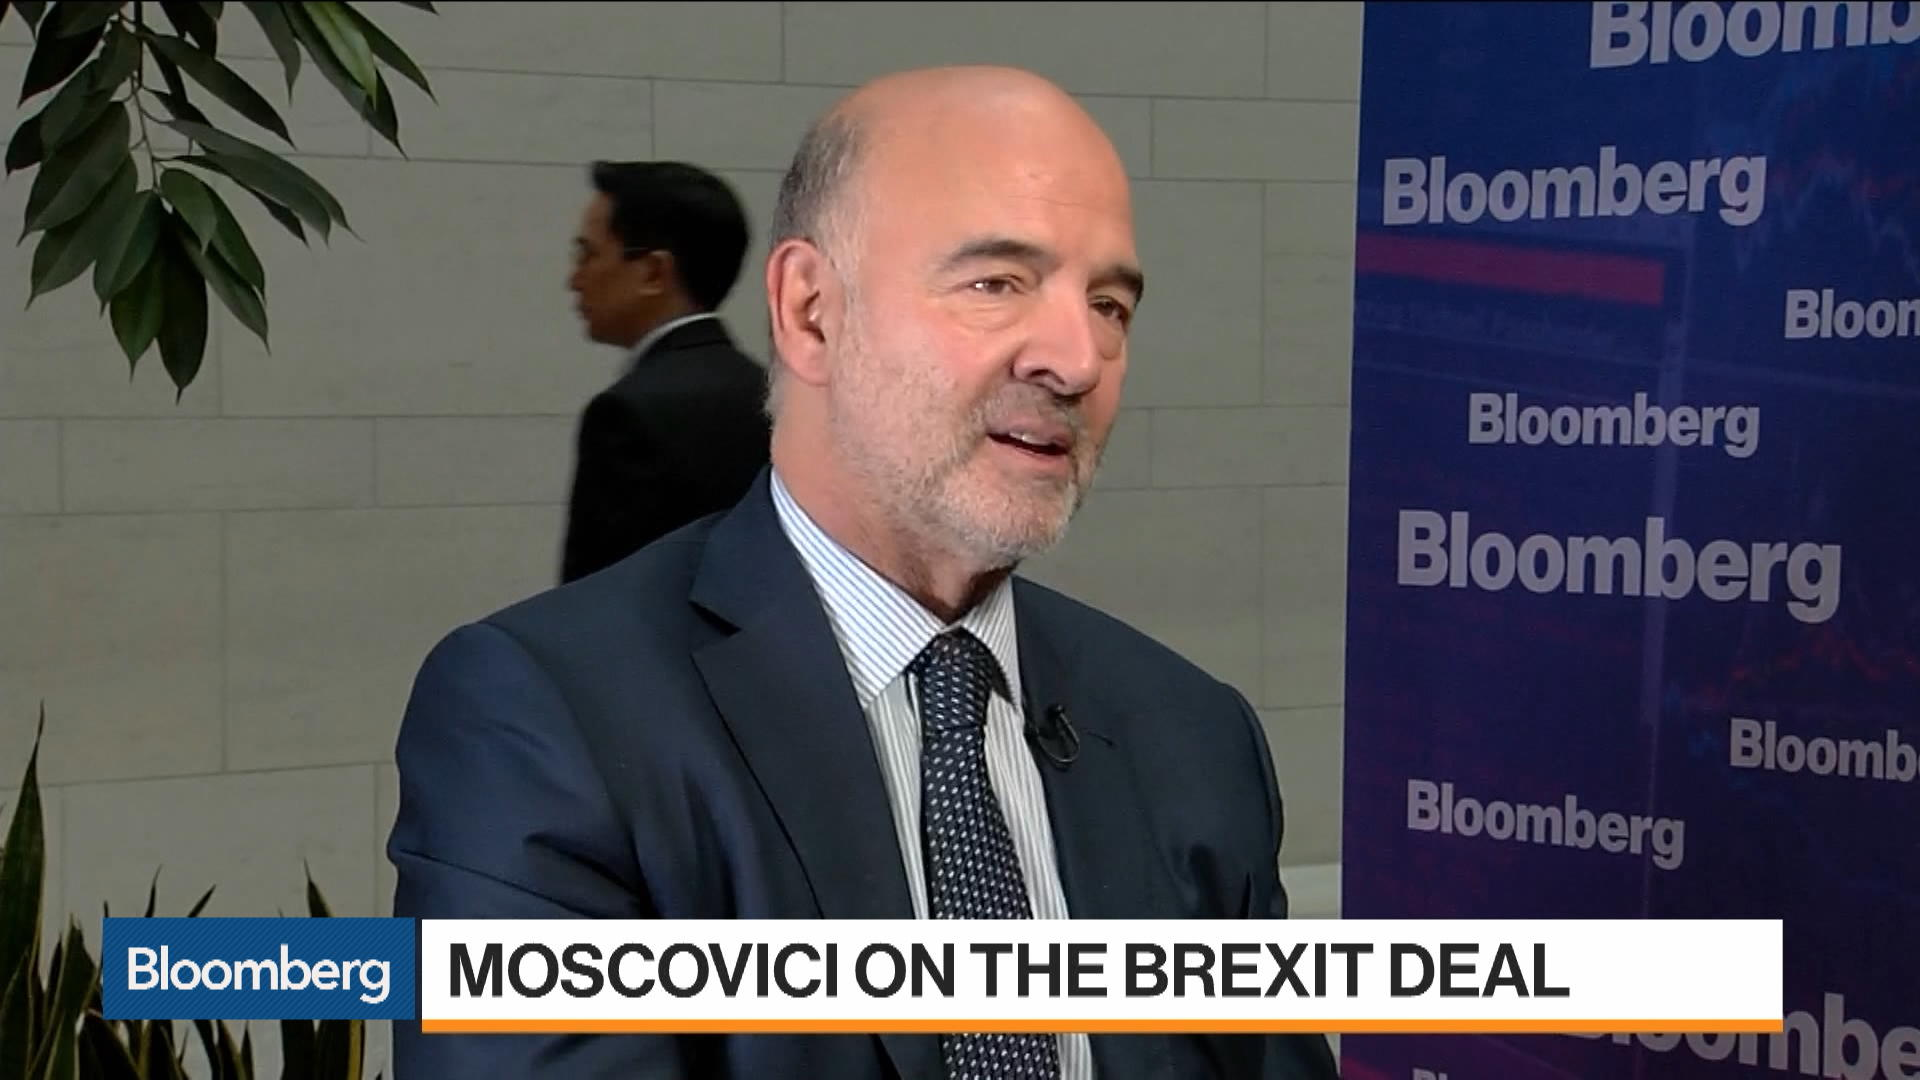 Brexit Deal Is a Defeat for Populism: Pierre Moscovici